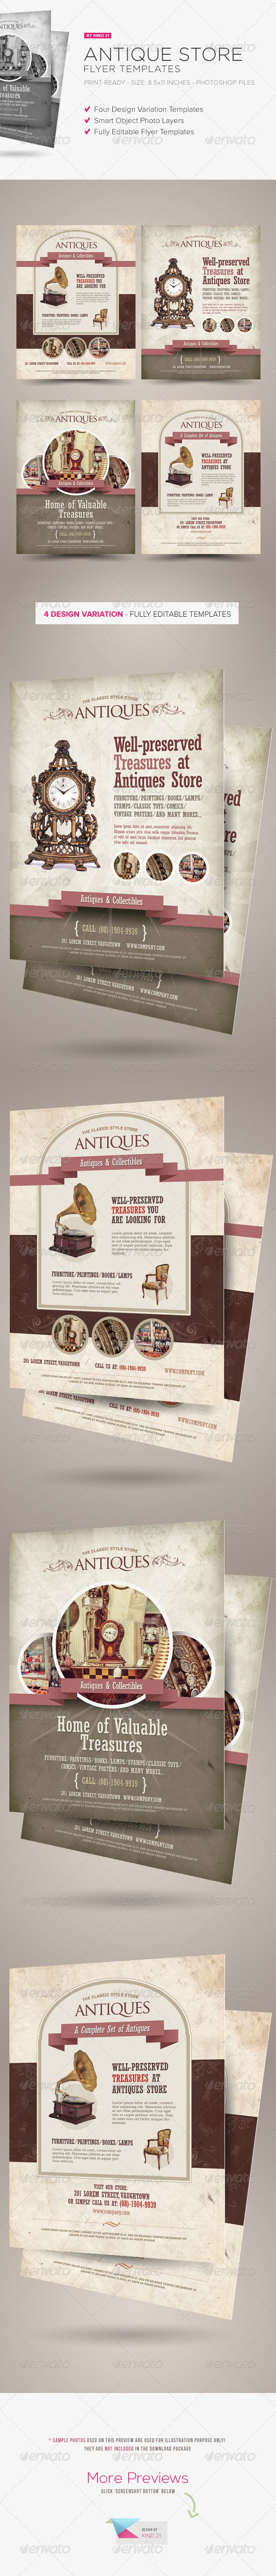 Antique Store Flyer Templates  #rare #retail #vintage • Click here to download ! http://graphicriver.net/item/antique-store-flyer-templates/6524288?s_rank=447&ref=pxcr